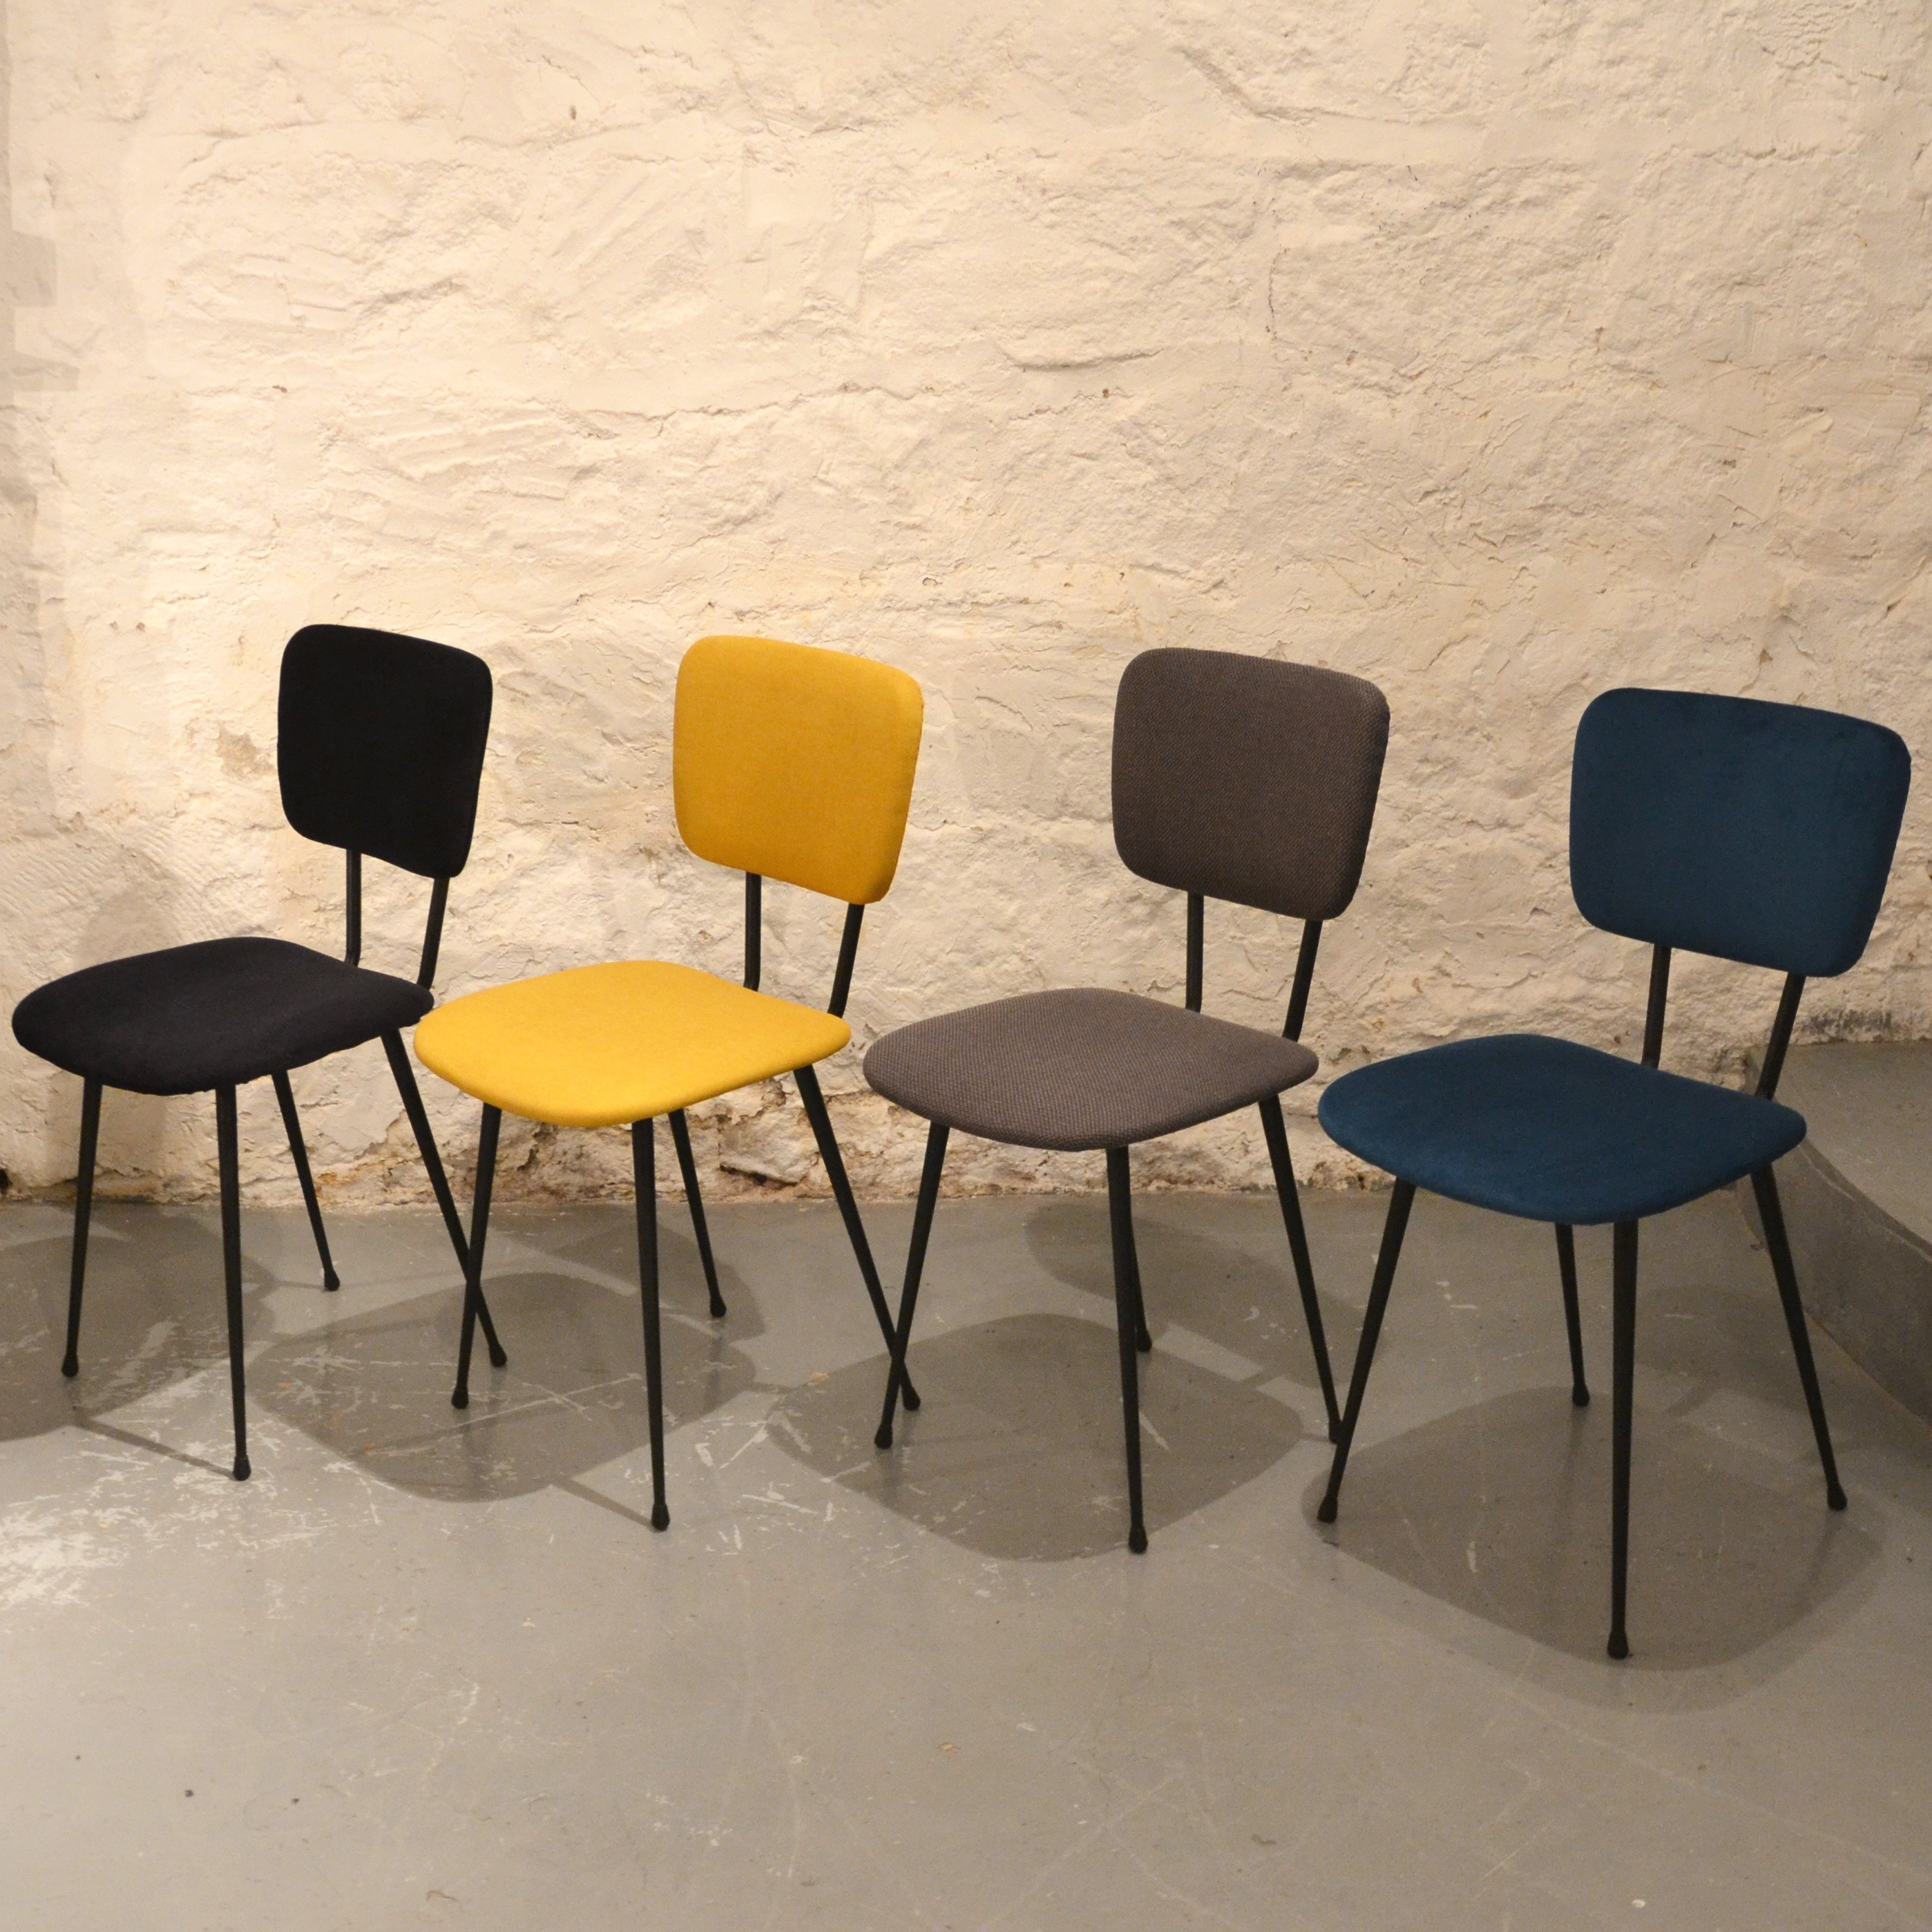 Chaises Fabriquées En France It Chairs Bindiesbindies